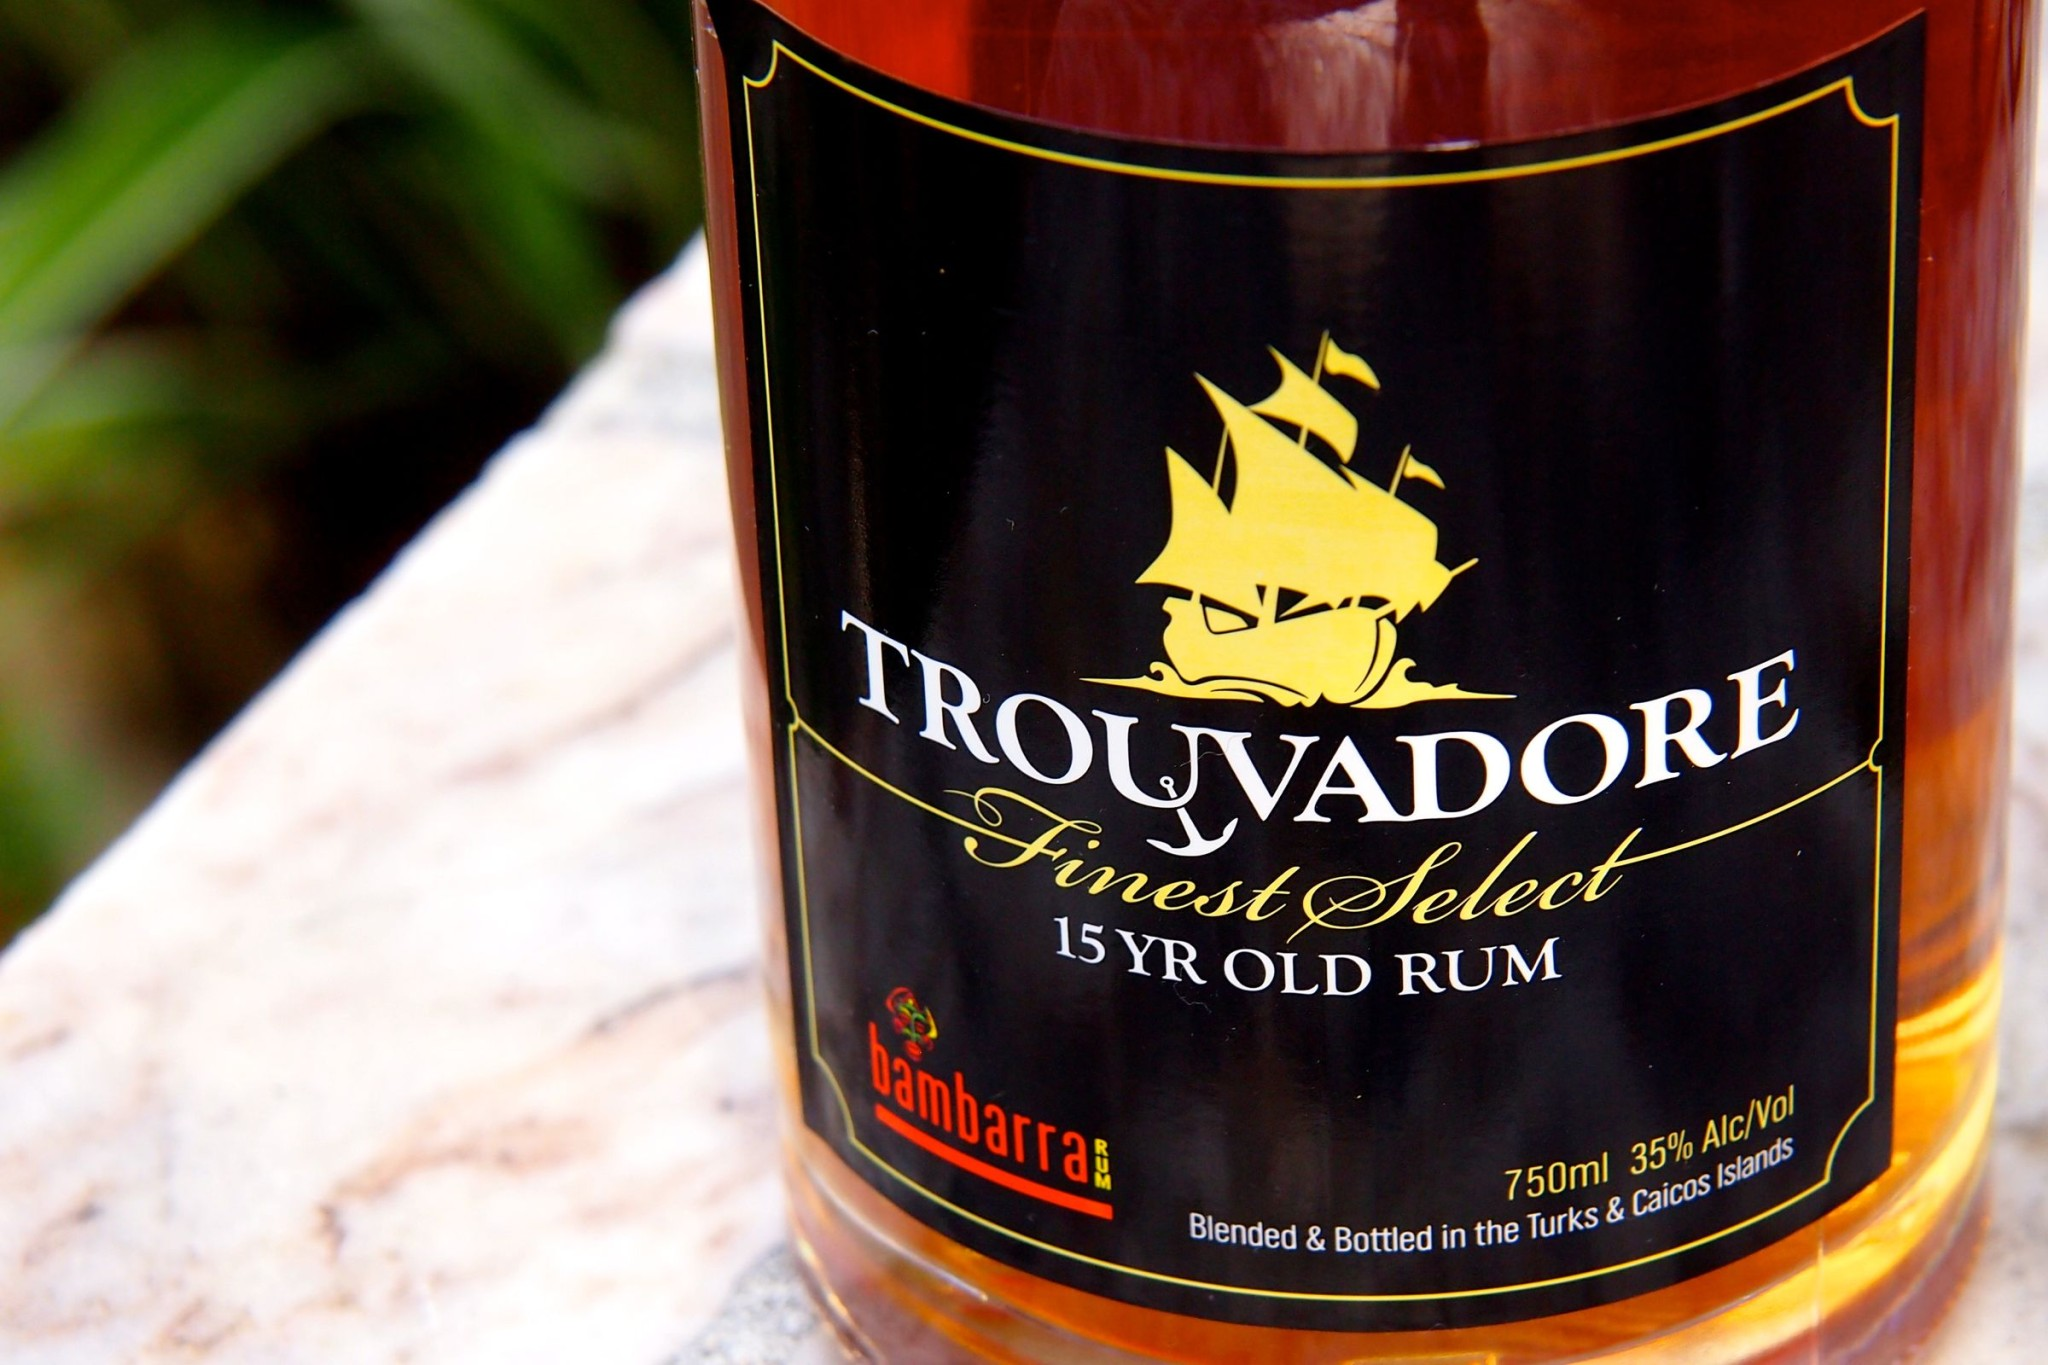 Friday Happy Hour: Trouvadore, The Top Shelf TCI Rum with the Wrong Name